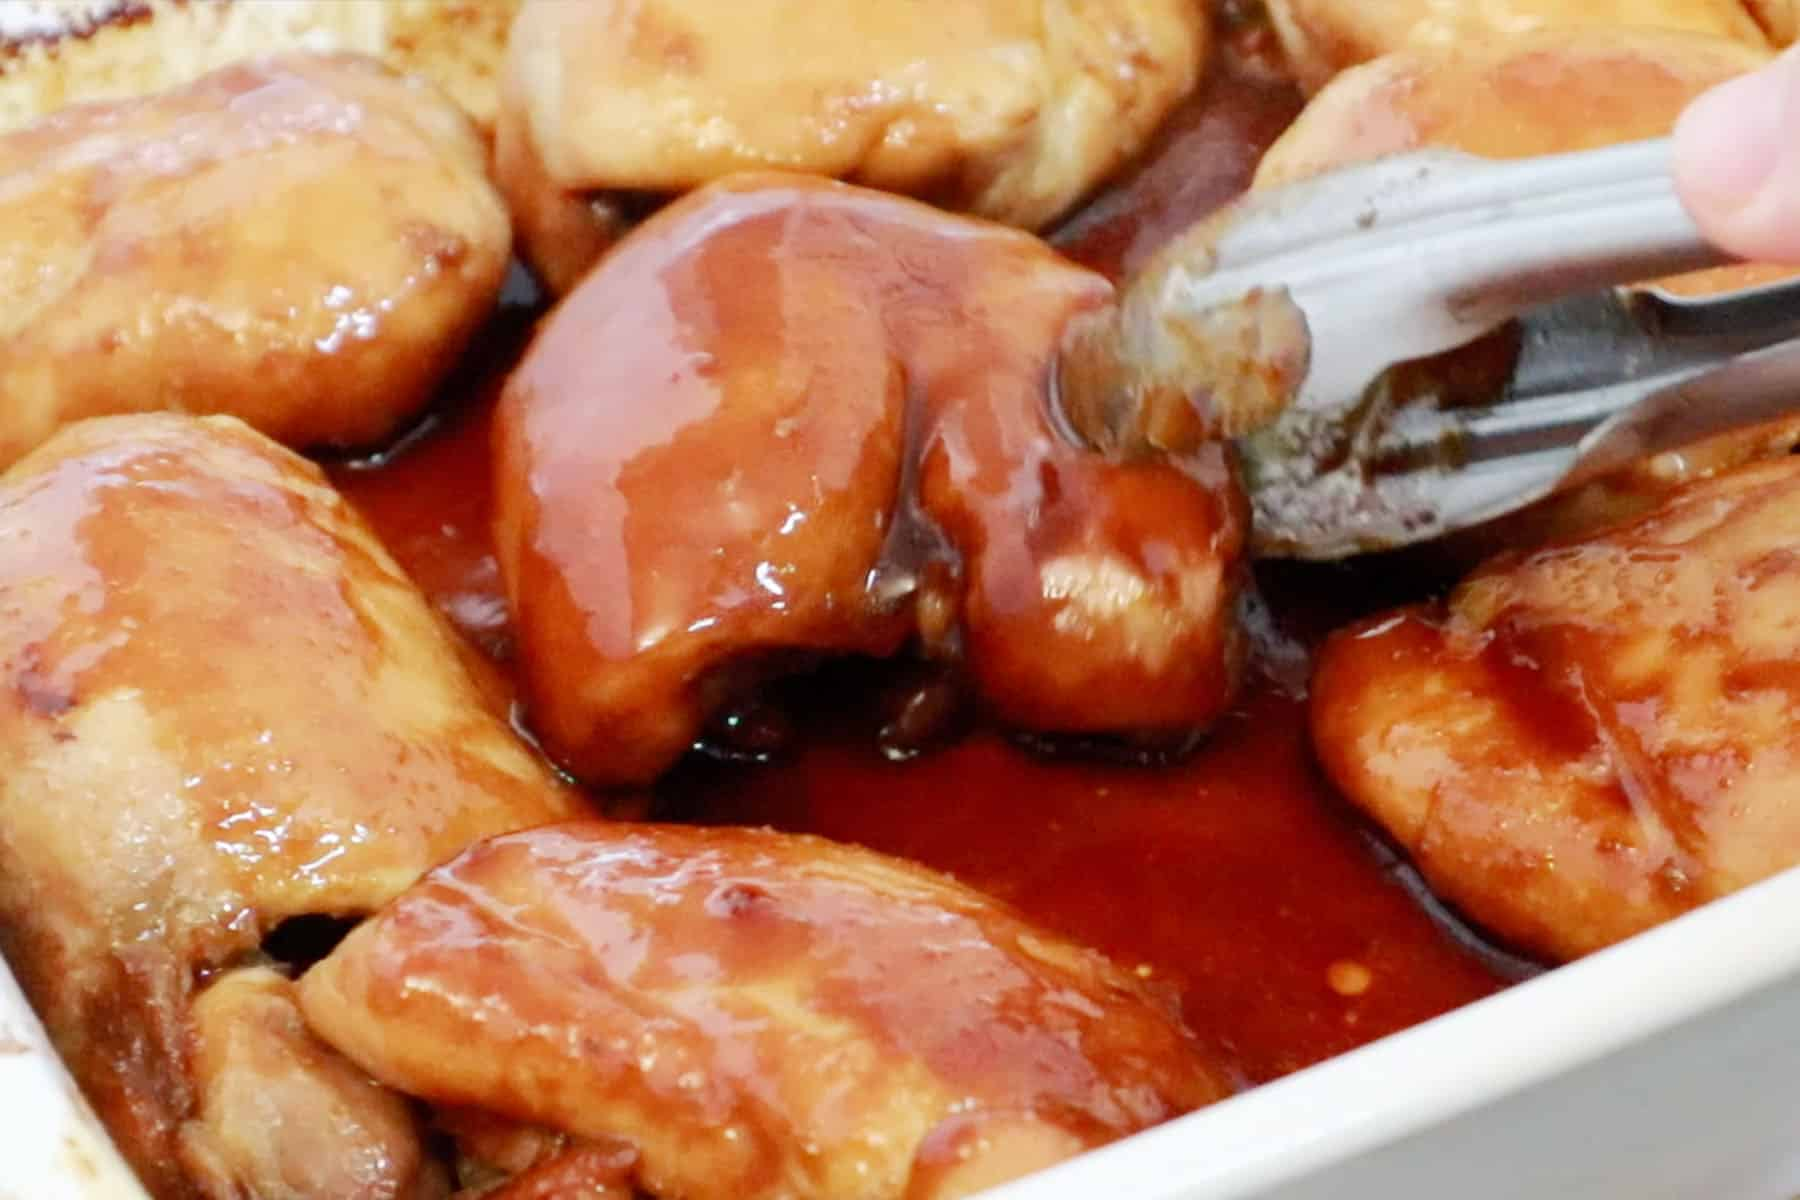 Honey Soy Chicken Thighs being turned over mid bake